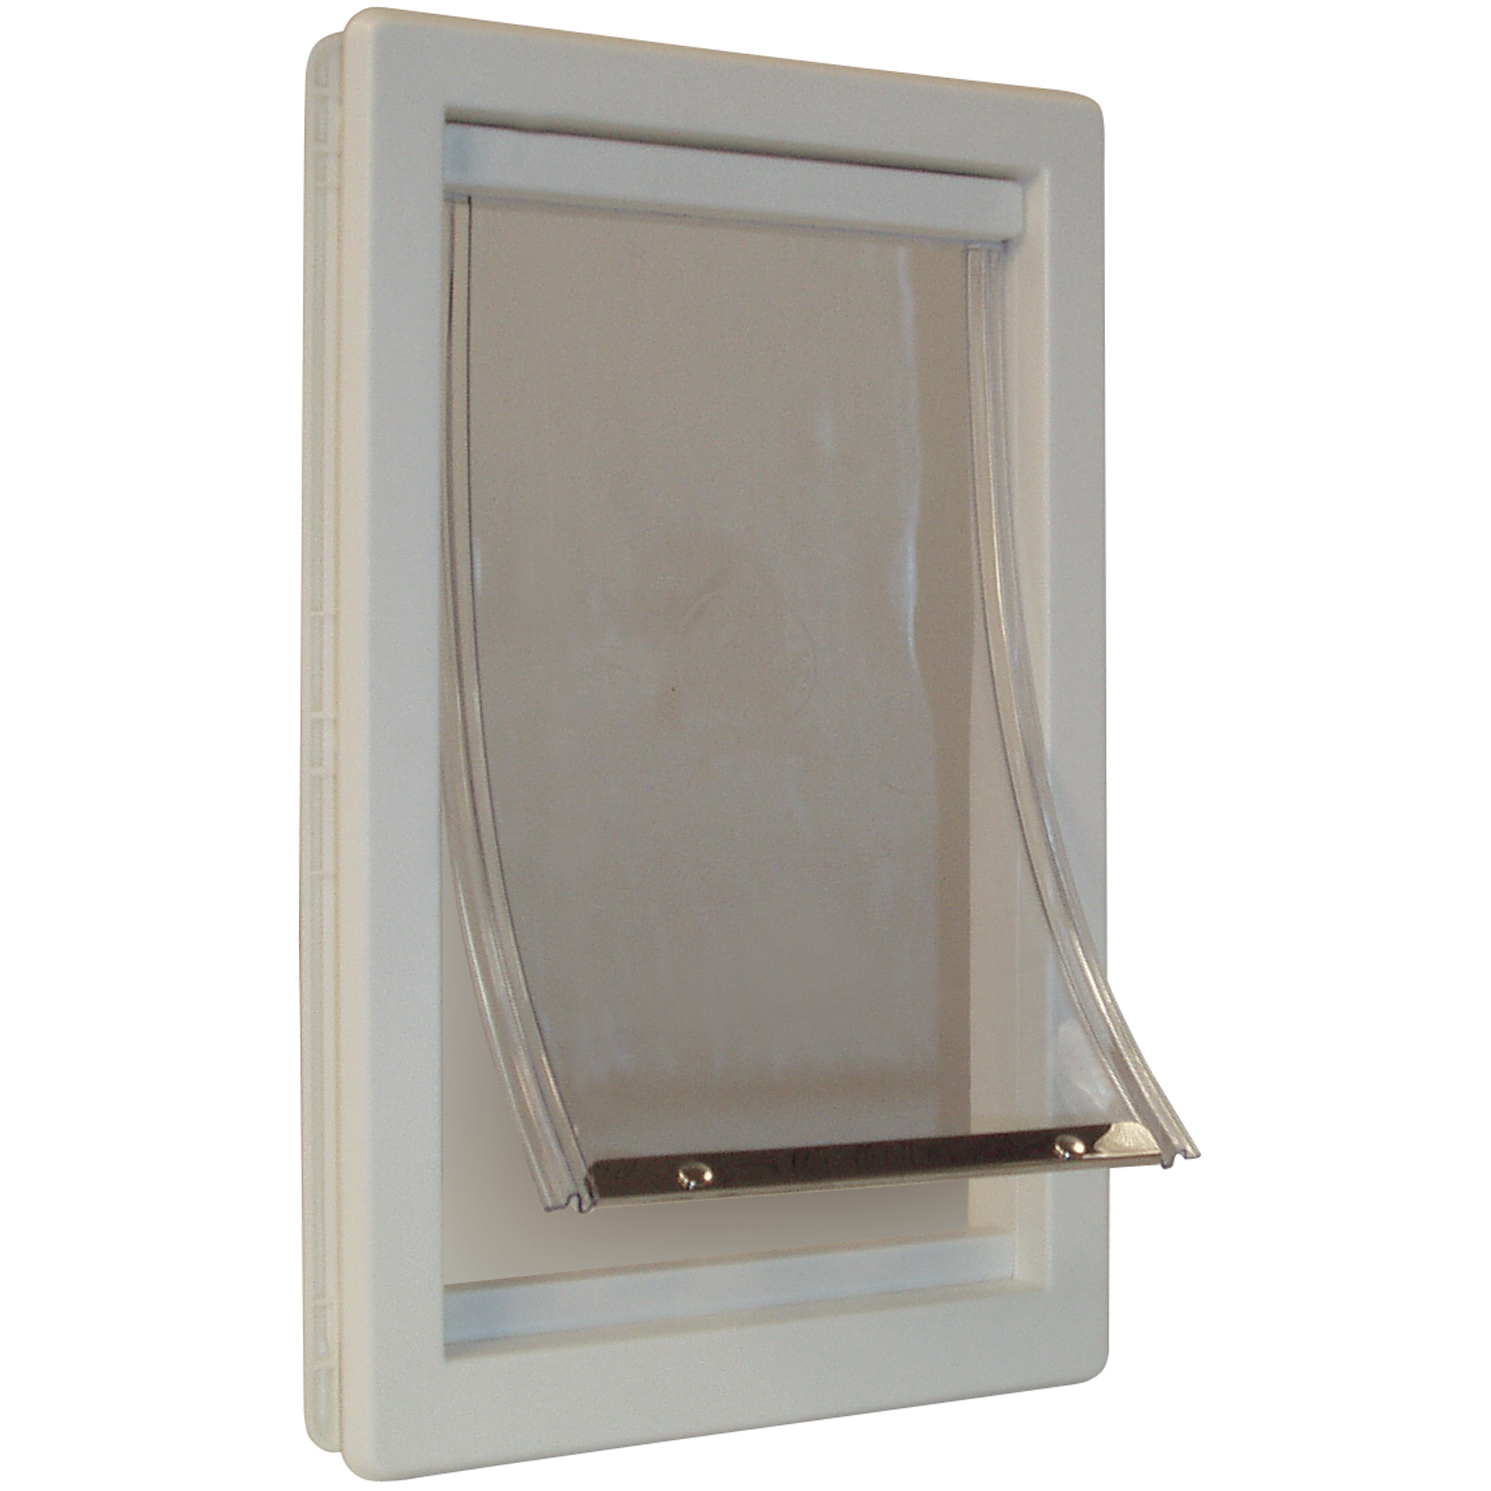 "Ideal Pet Products PPDS 7"" X 10-5/8"" Small Thermoplastic Pet Door"